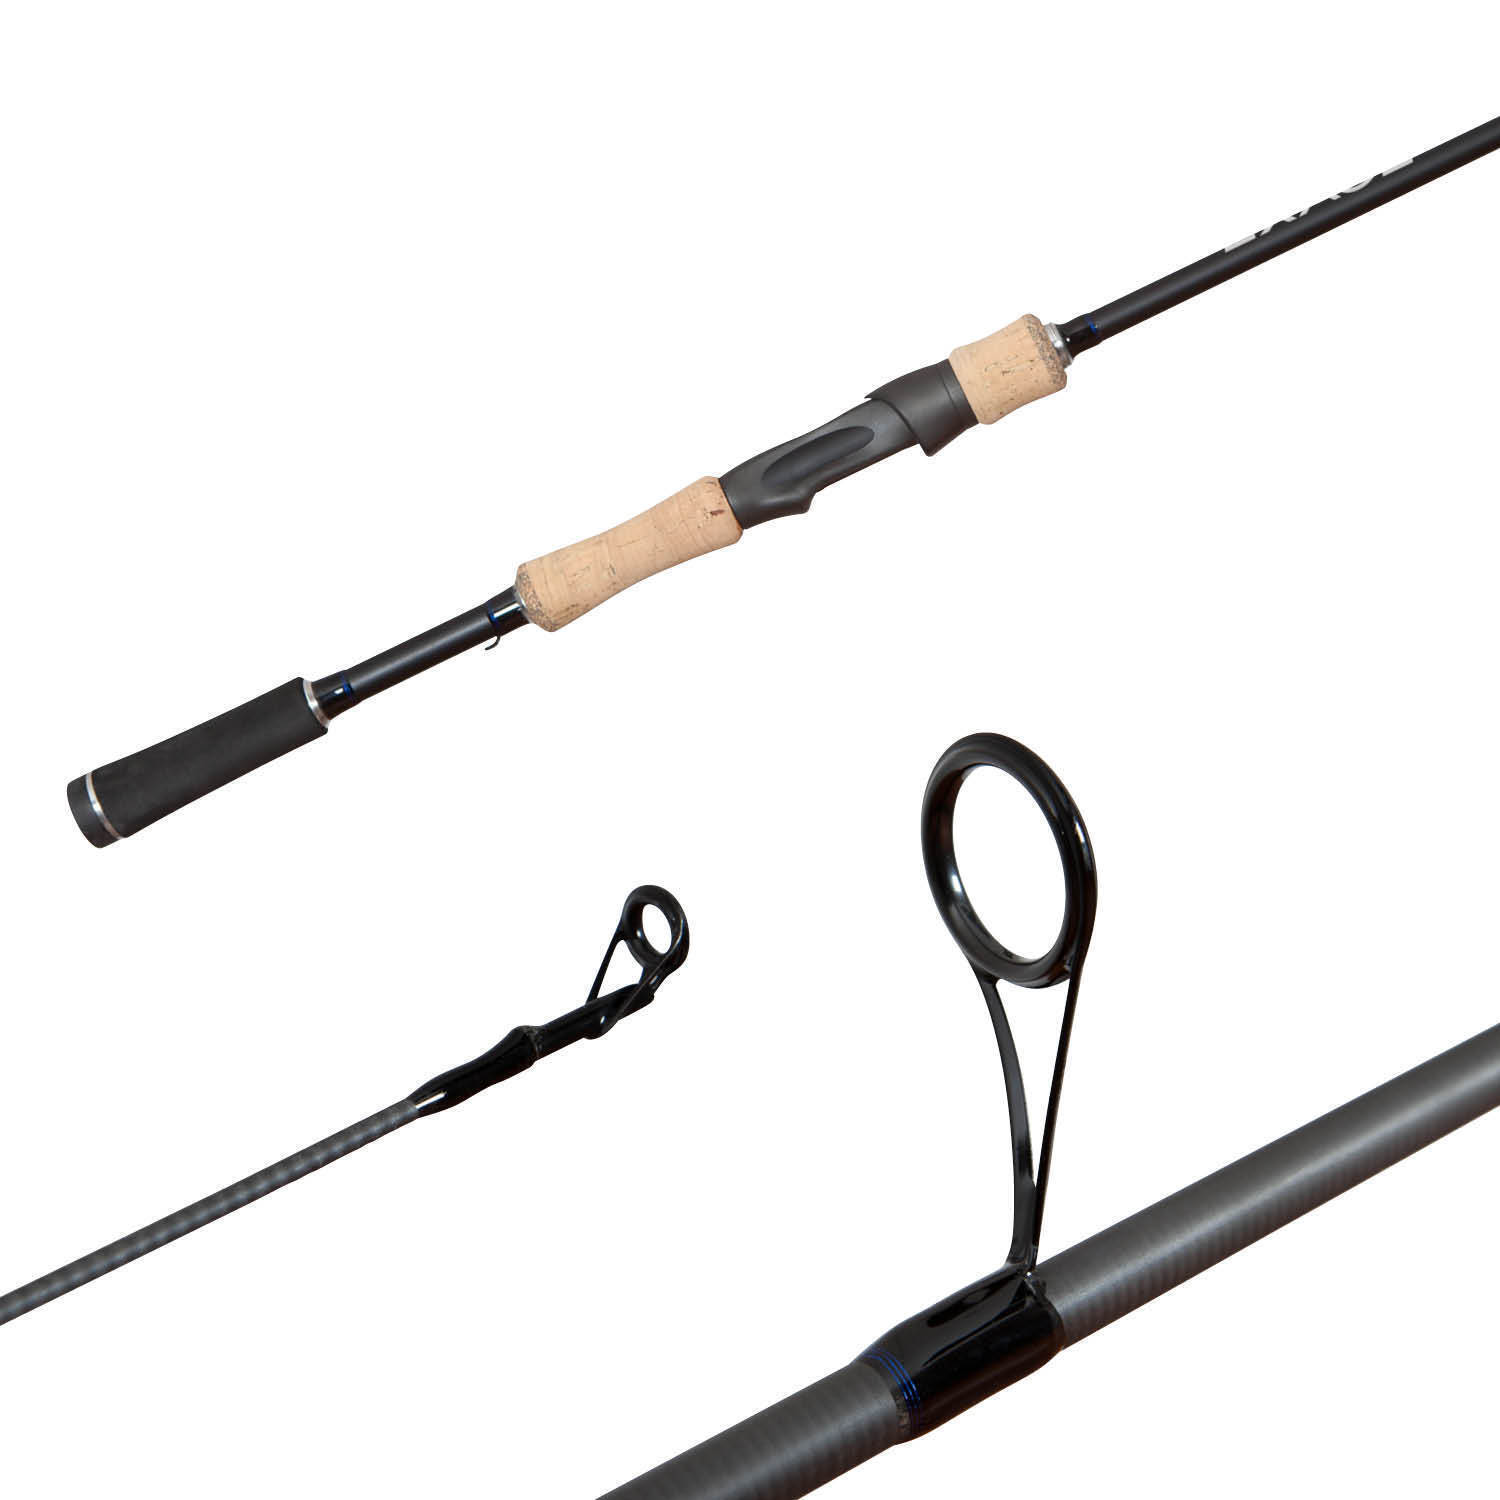 Shimano Exage Spinning 6'8  Med 1-Piece  Rod XAS68M - FREE SHIPPING -  official quality